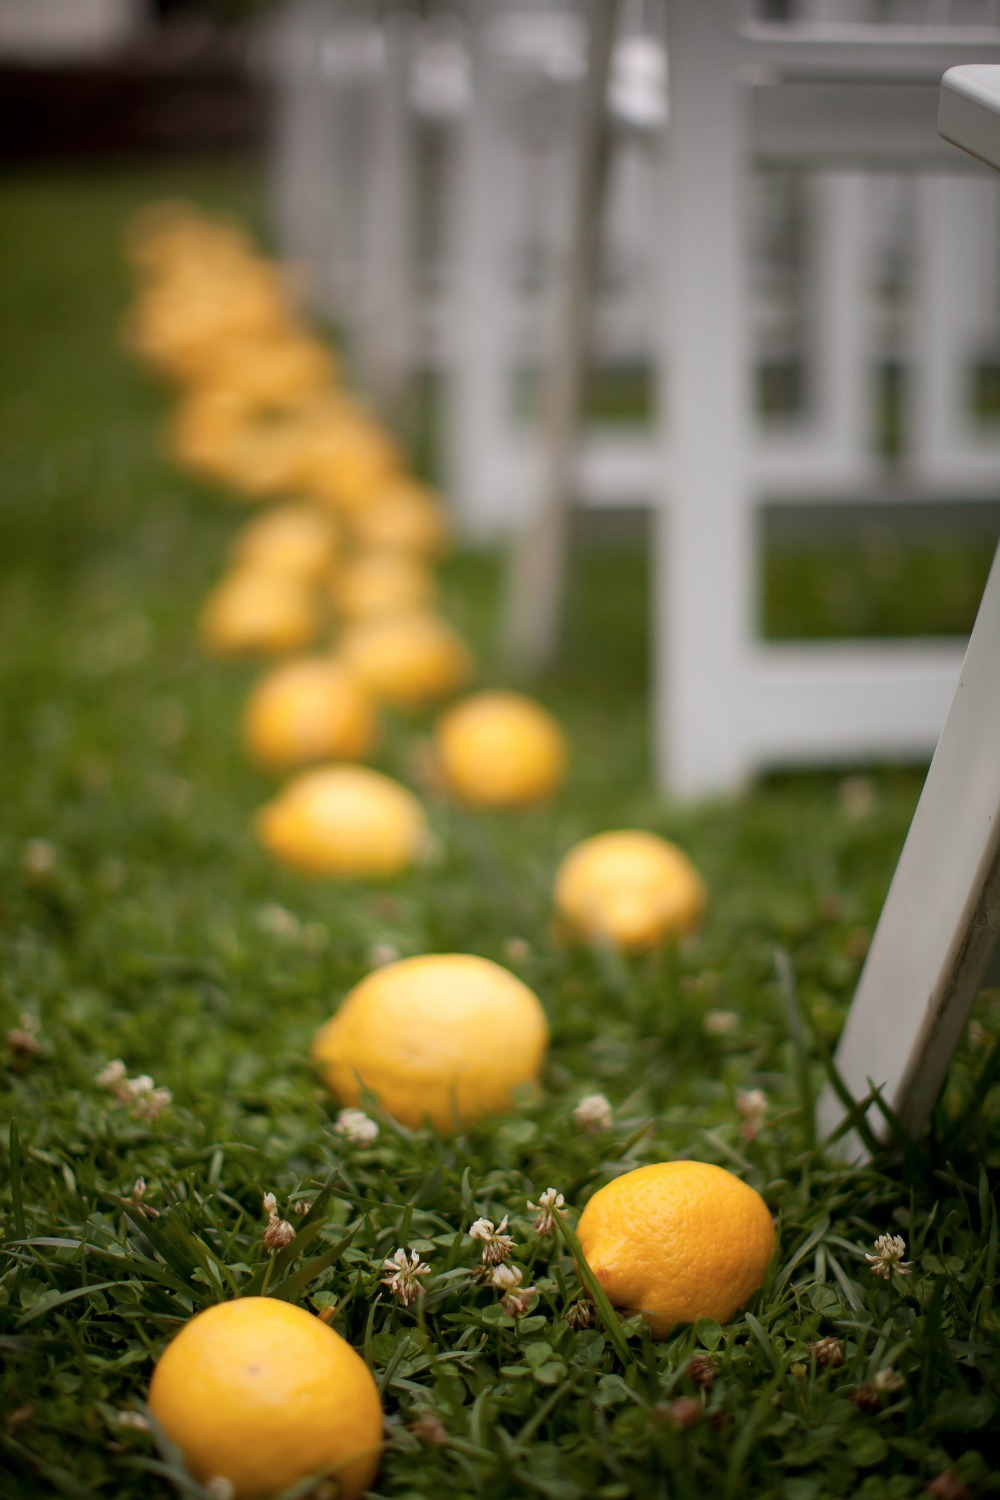 lemony fresh ceremony decor